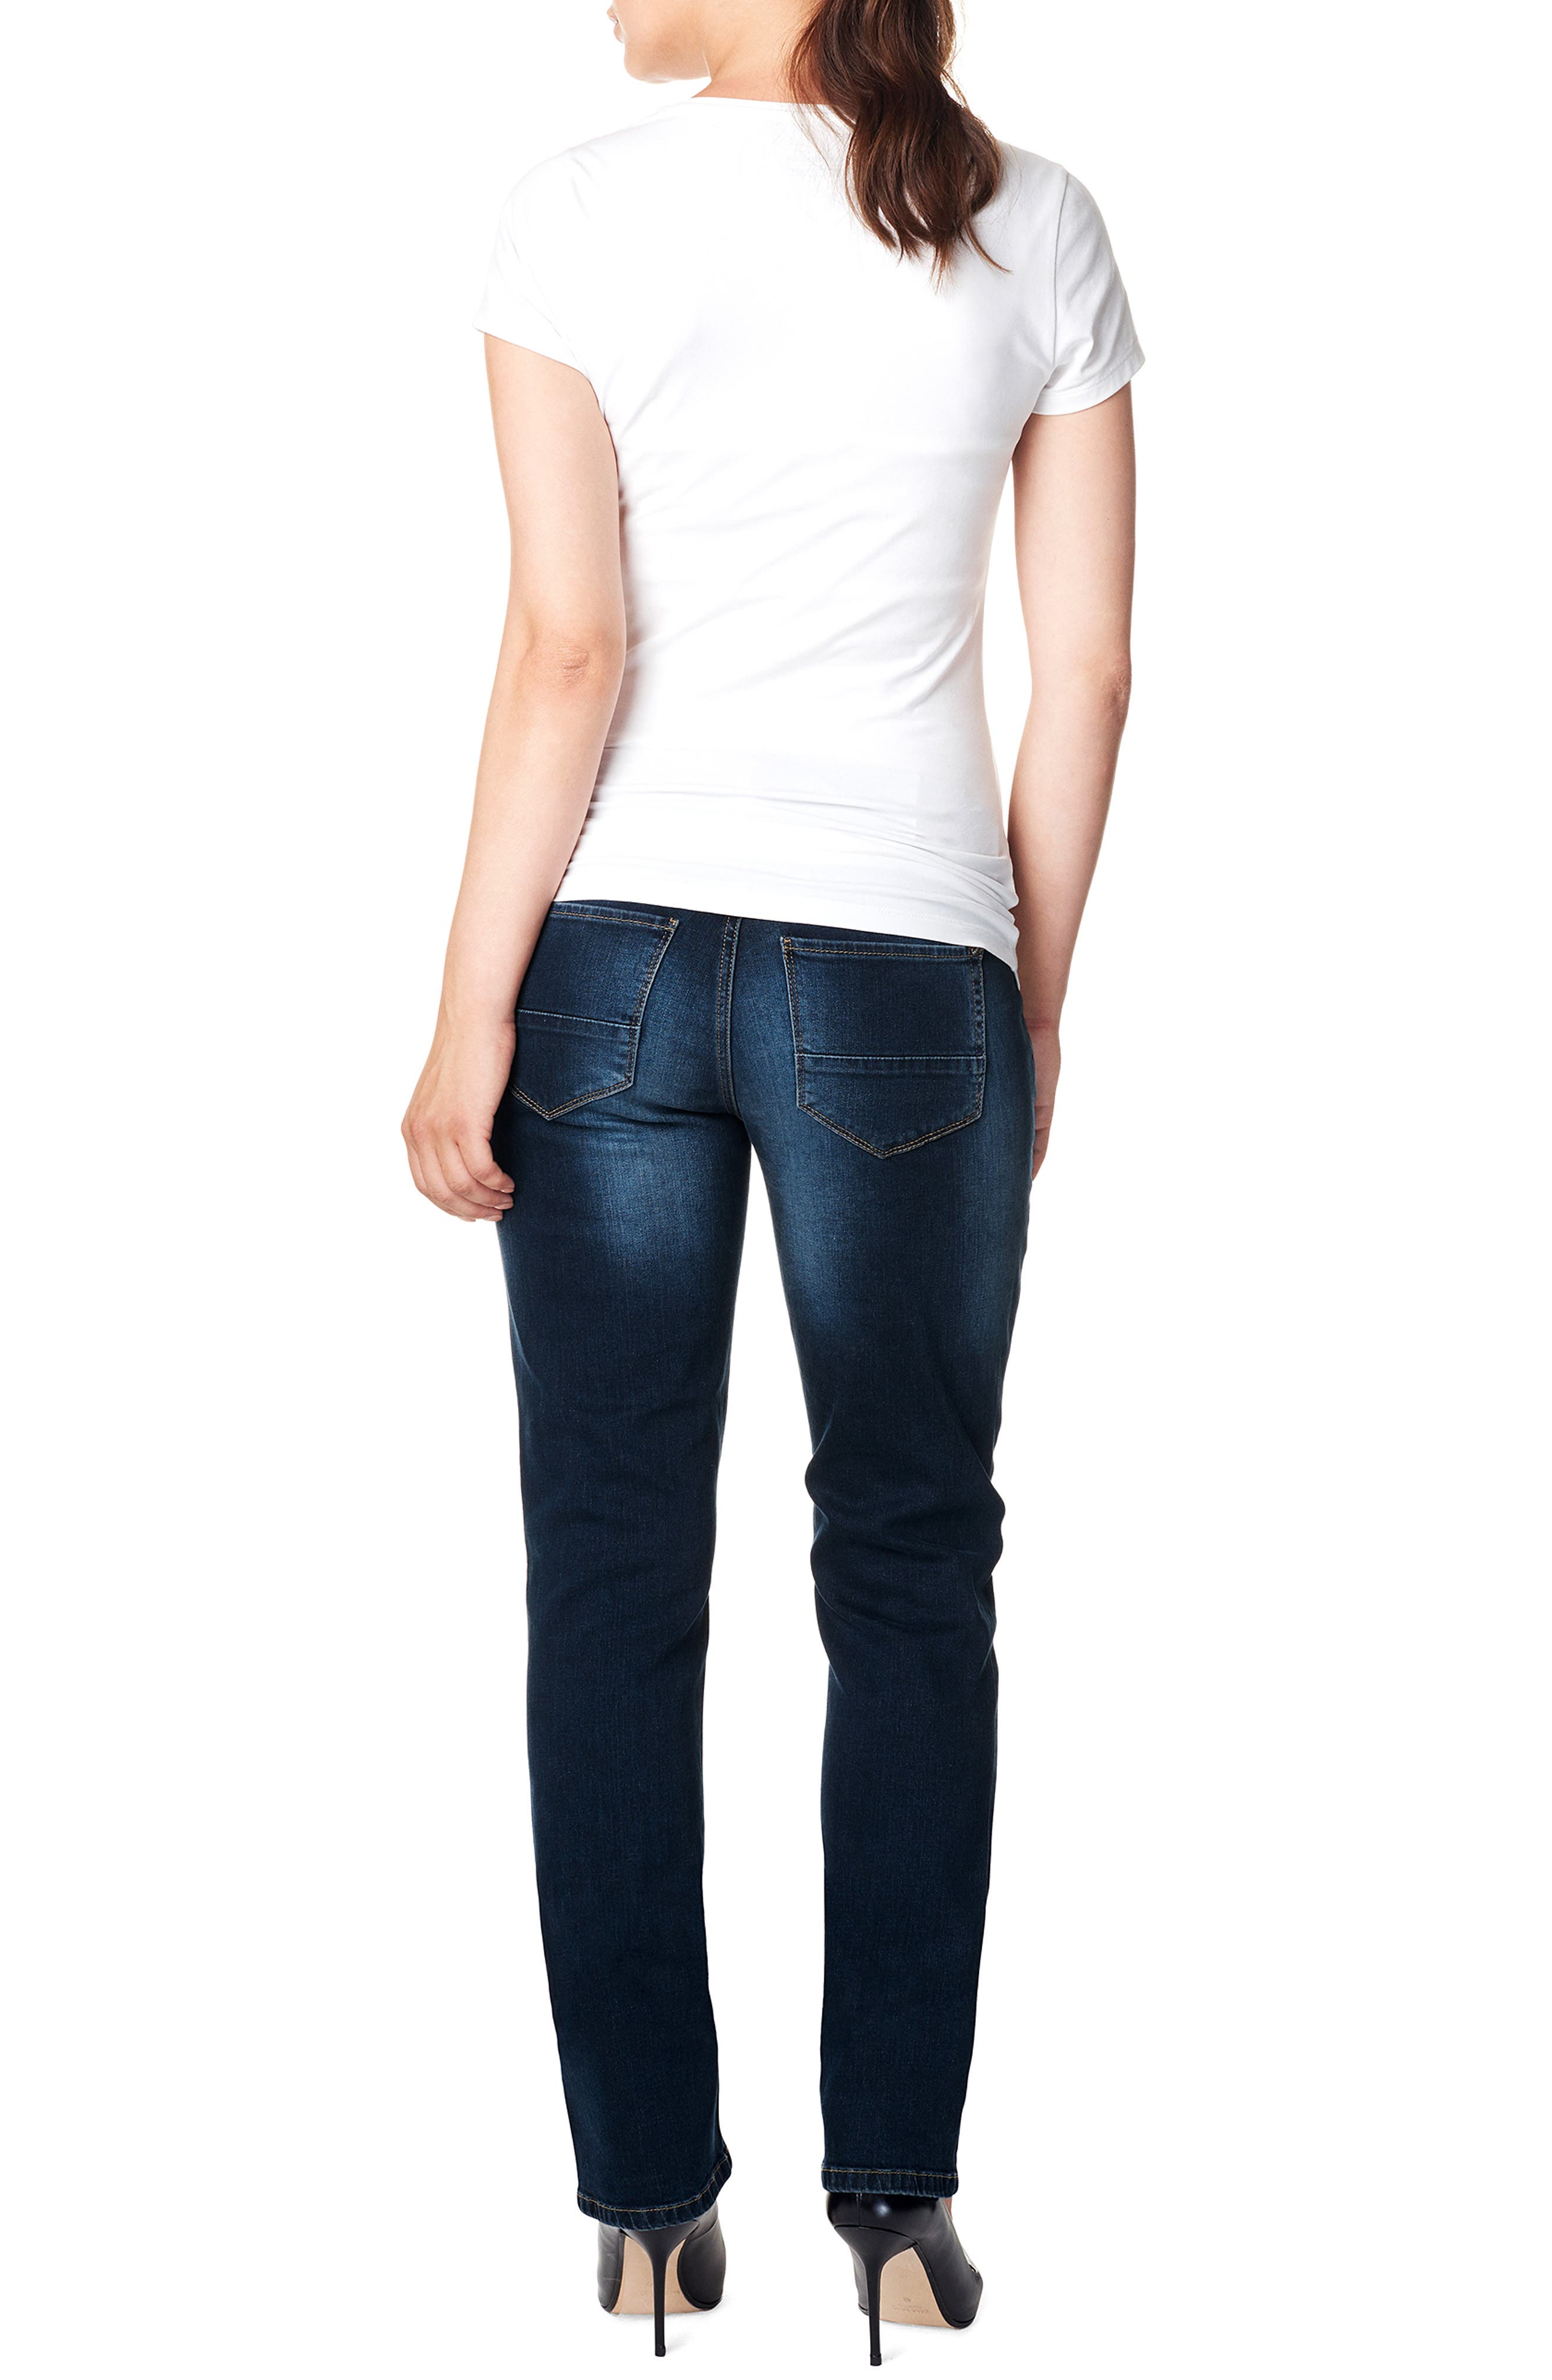 'Mena Comfort' Over the Belly Straight Leg Maternity Jeans,                             Alternate thumbnail 4, color,                             DARK STONE WASH